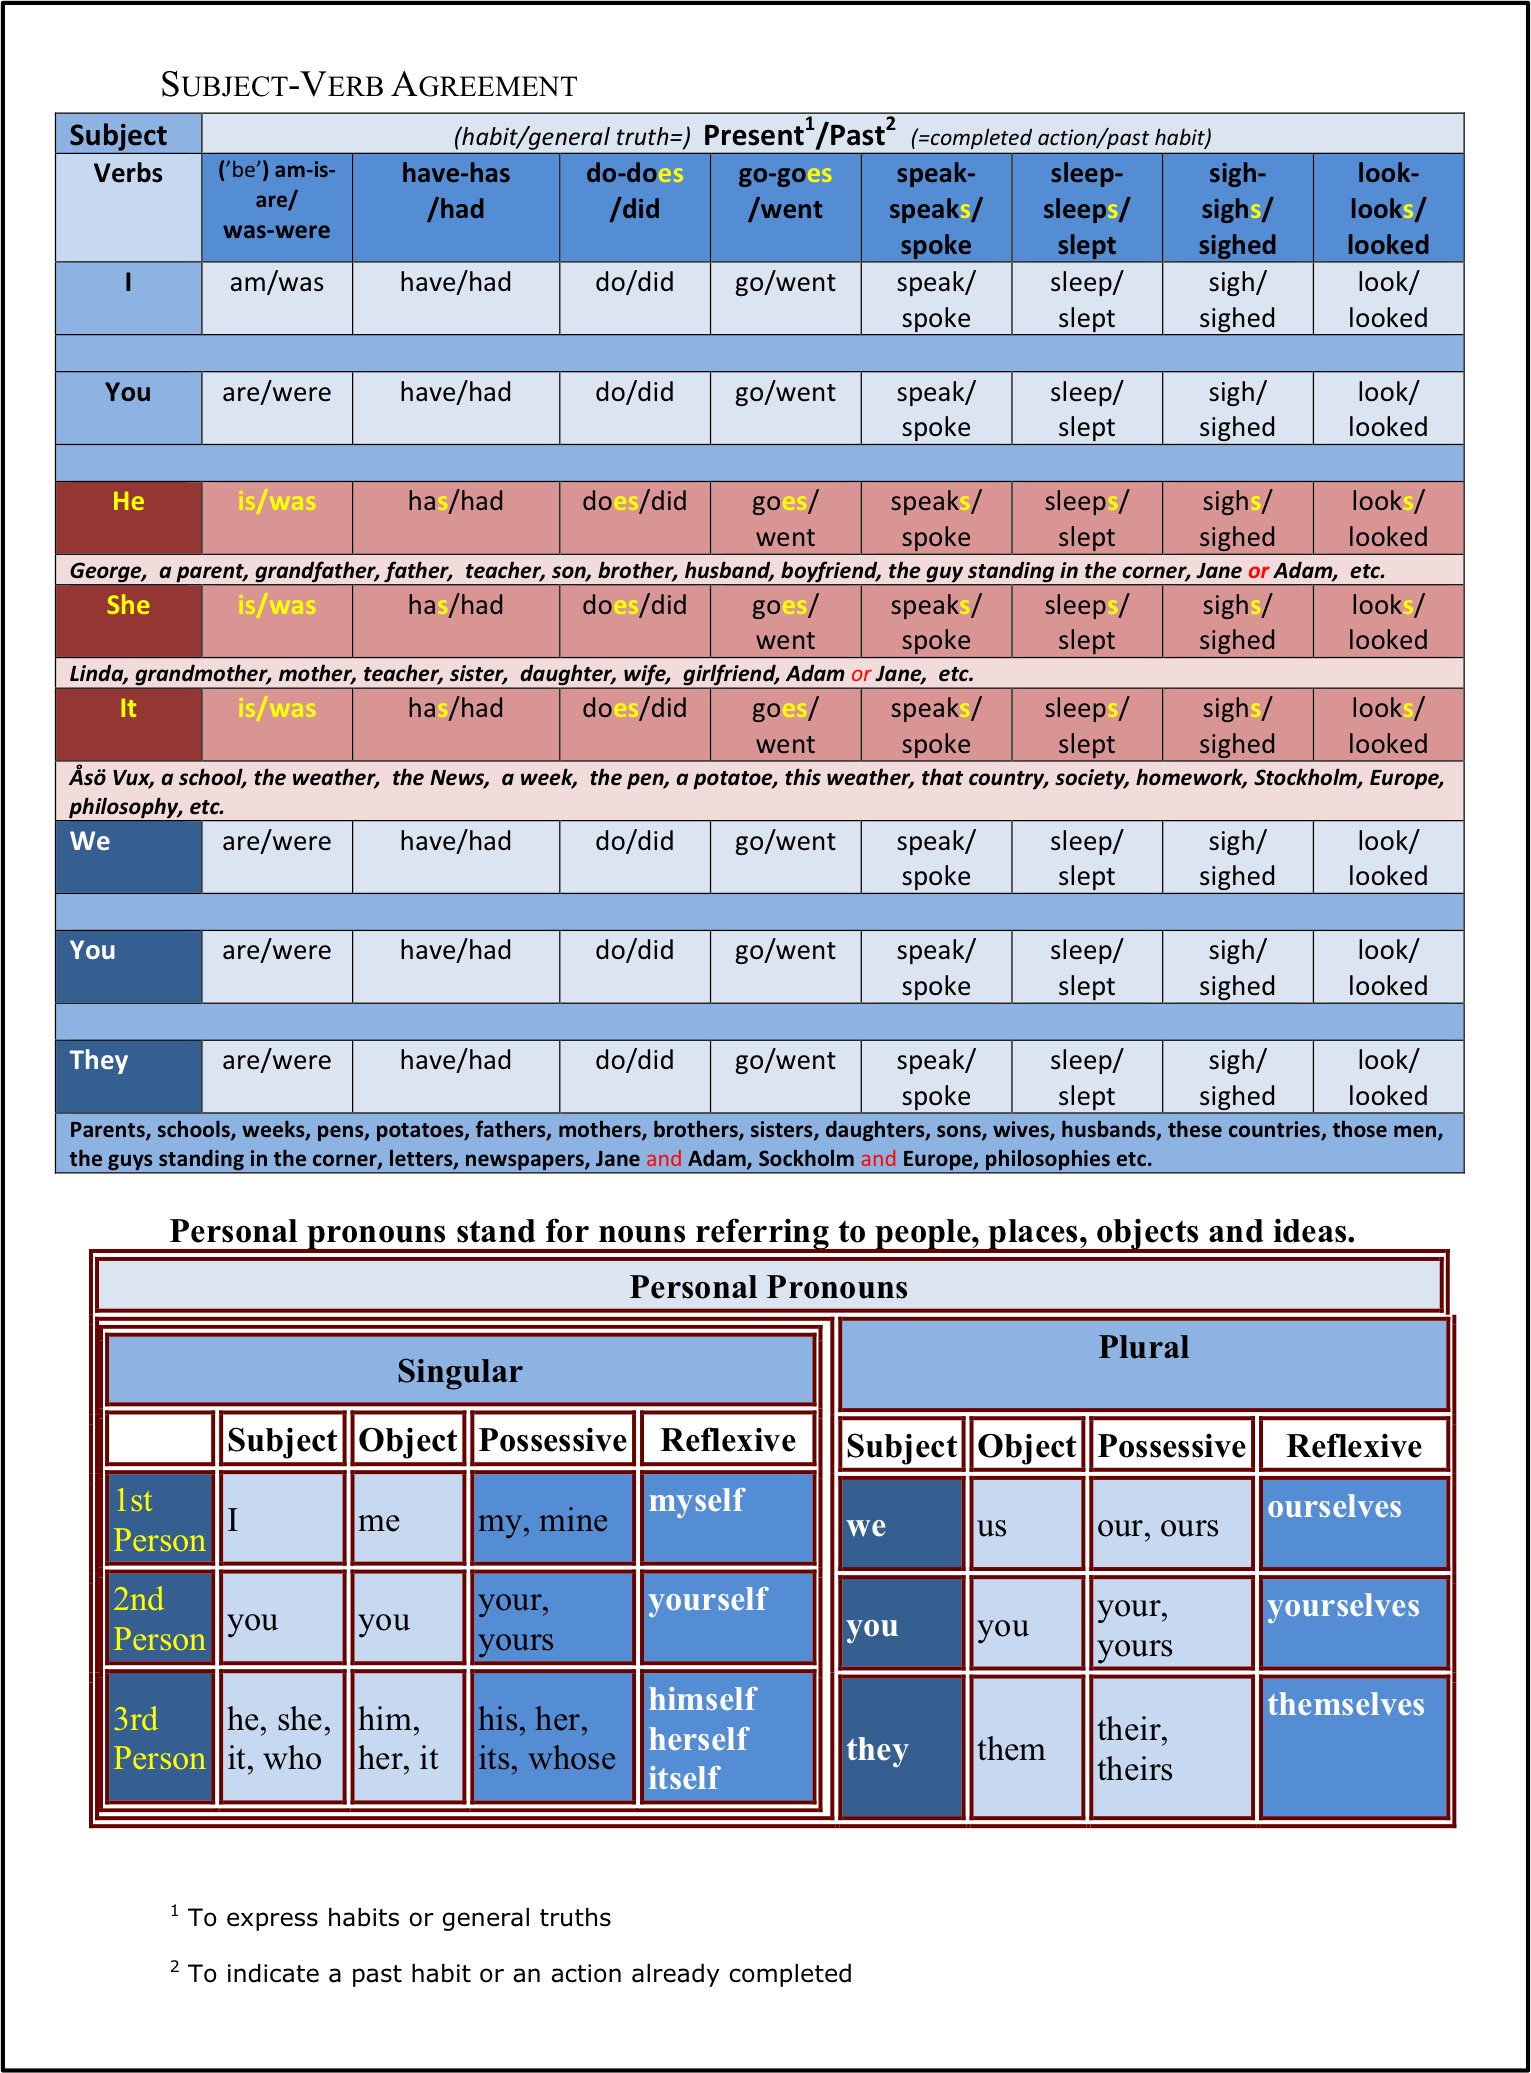 Subject verb agreement | English | Pinterest